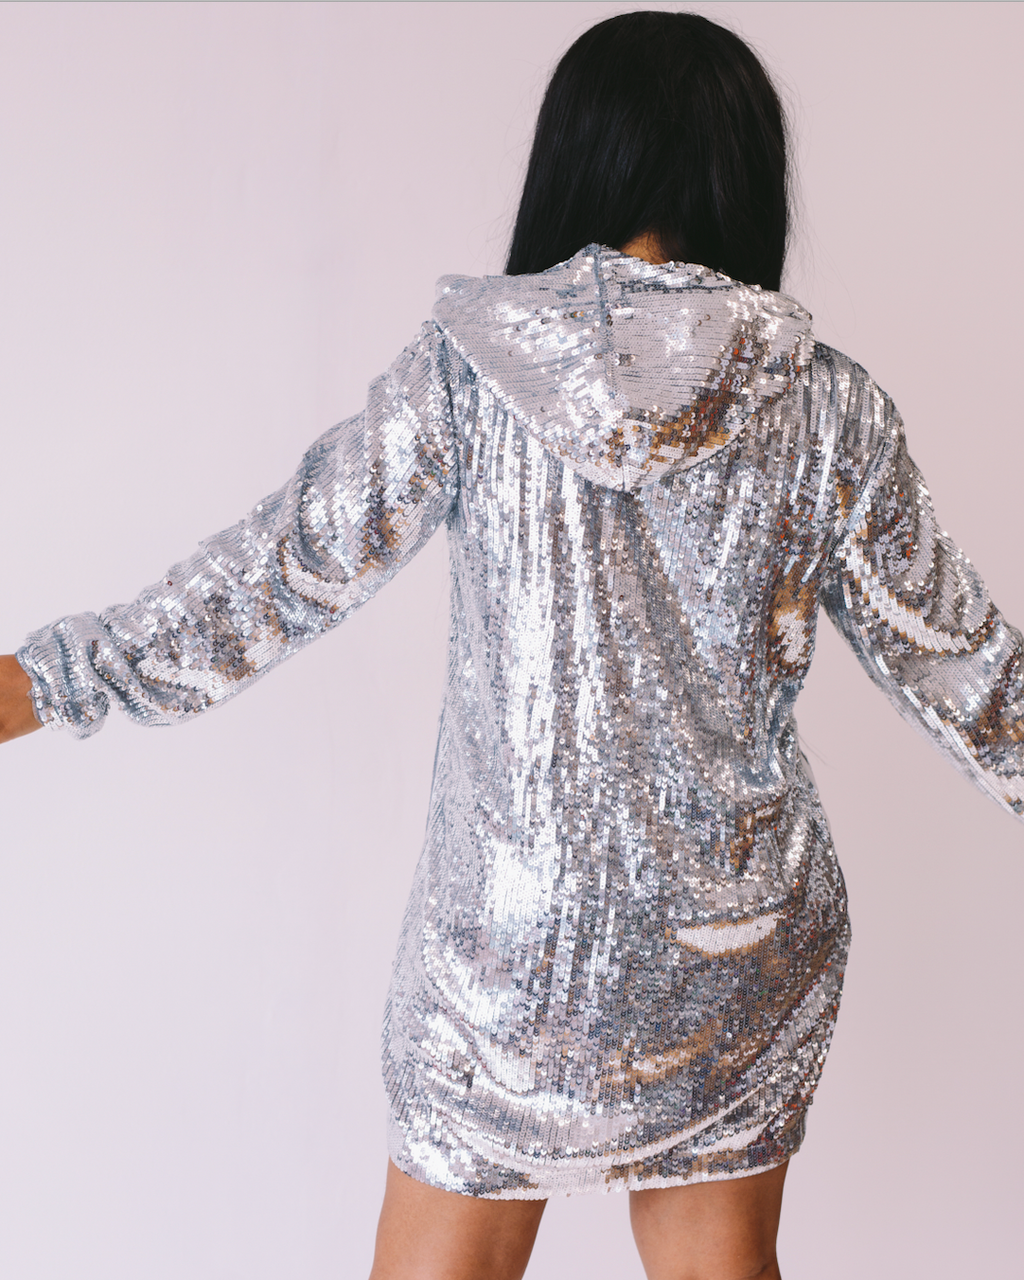 Stole The Show | Sequin Hoodie Dress ESTIMATED SHIP DATE 10/15